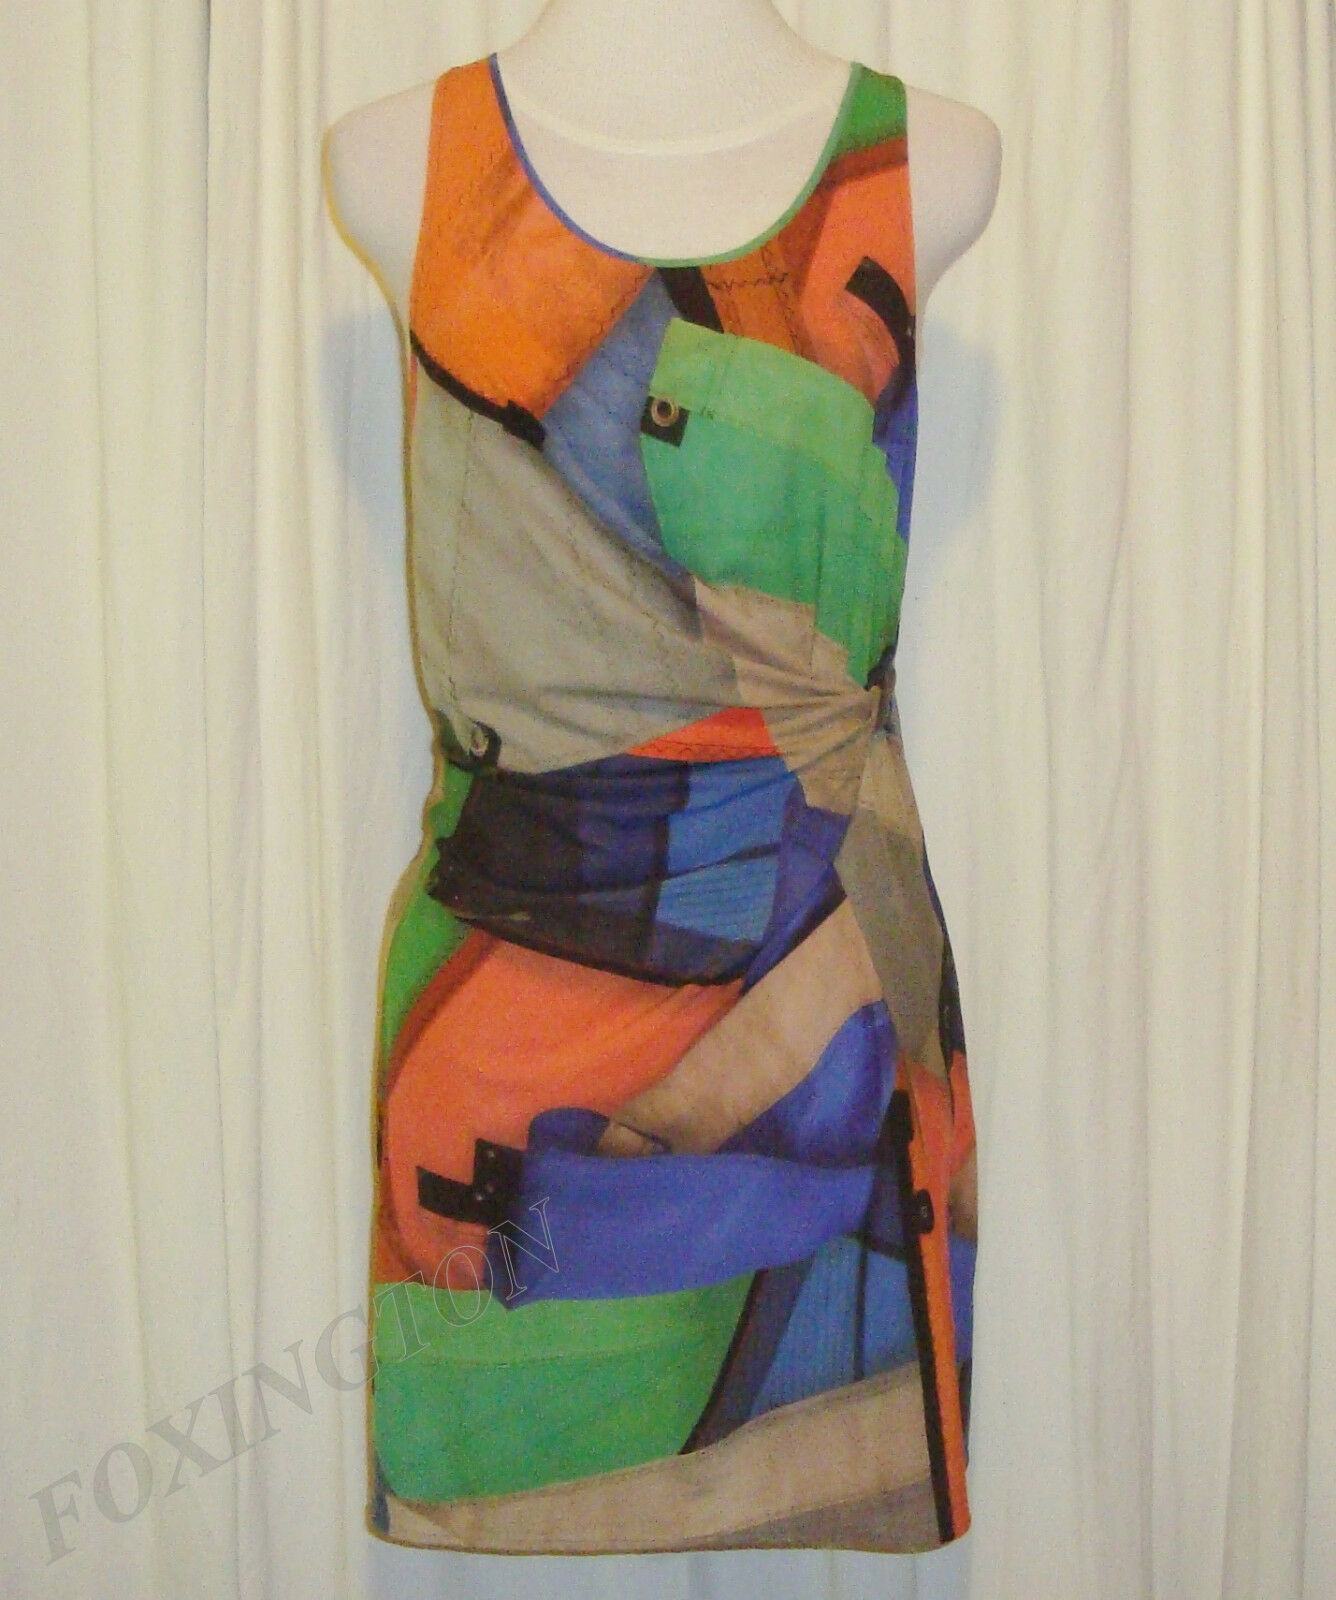 BEAUTIFUL PUMA by HUSSEIN CHALAYAN SAIL PRINT MINI DRESS US M,UK AUS 12